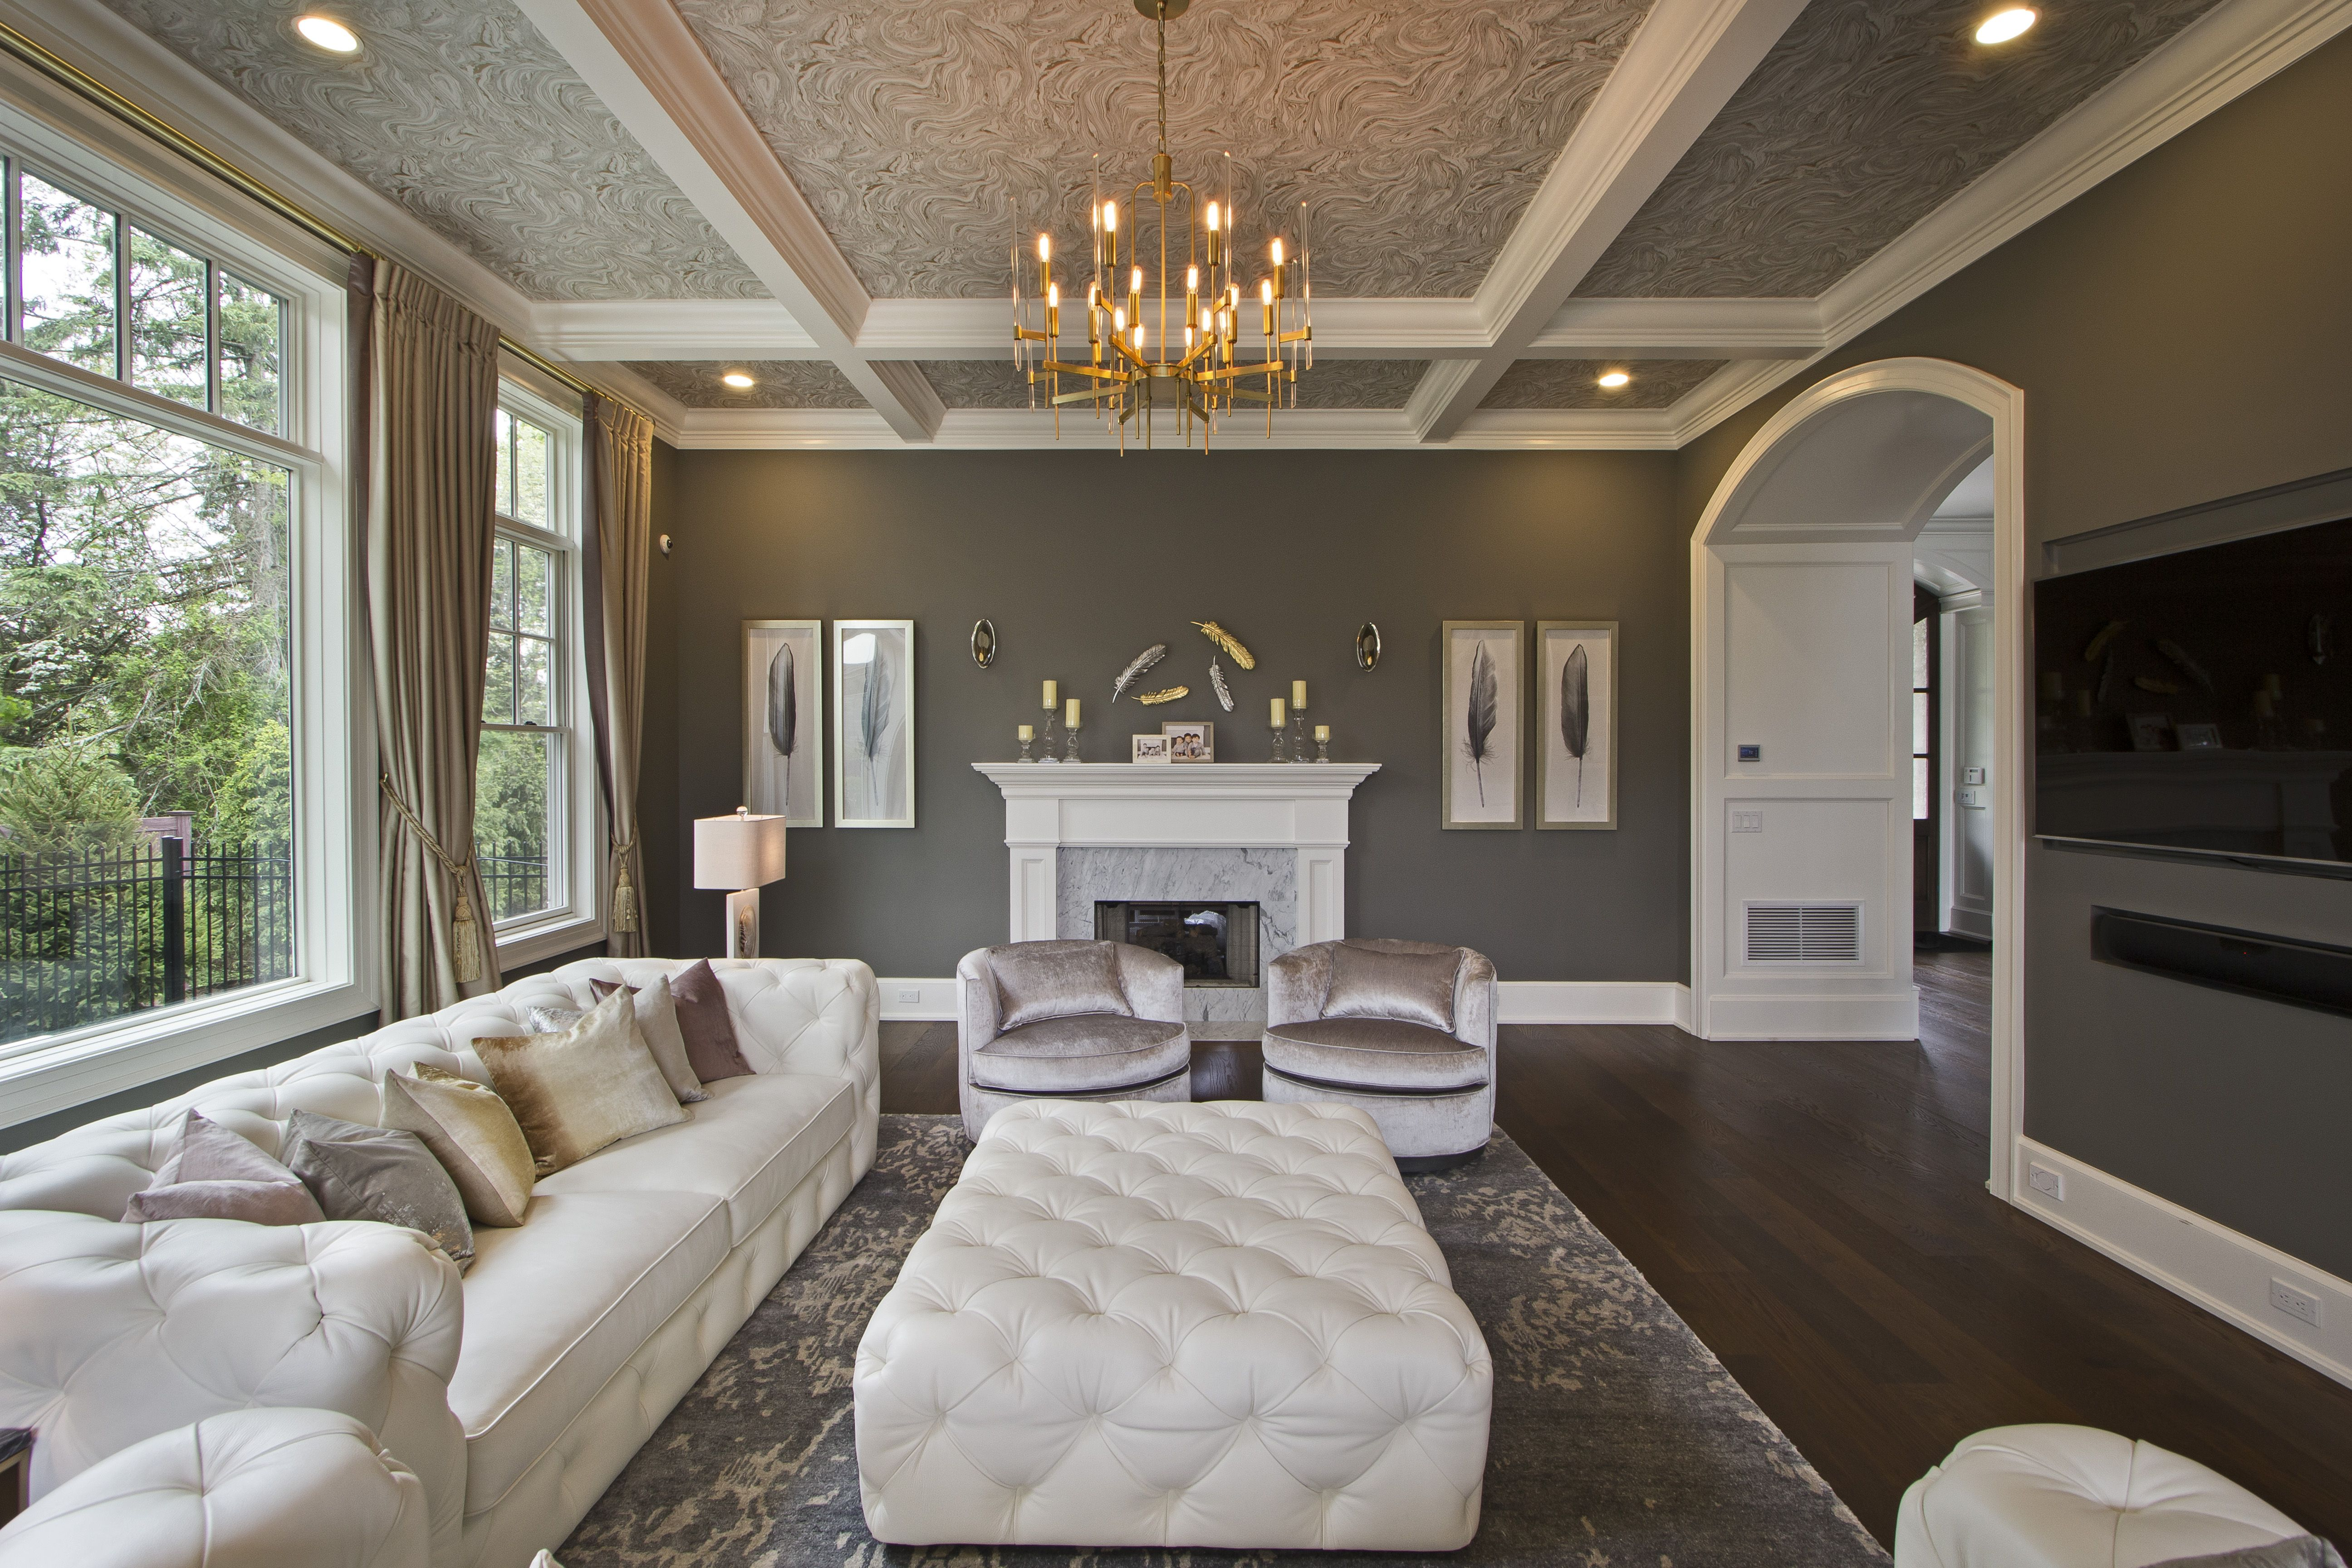 Glamilistic Living Room With Pastel Colors Scheme With A Beautiful Ceiling In Old Tappan Nj Interior Design Interior Design #pastel #colours #for #living #room